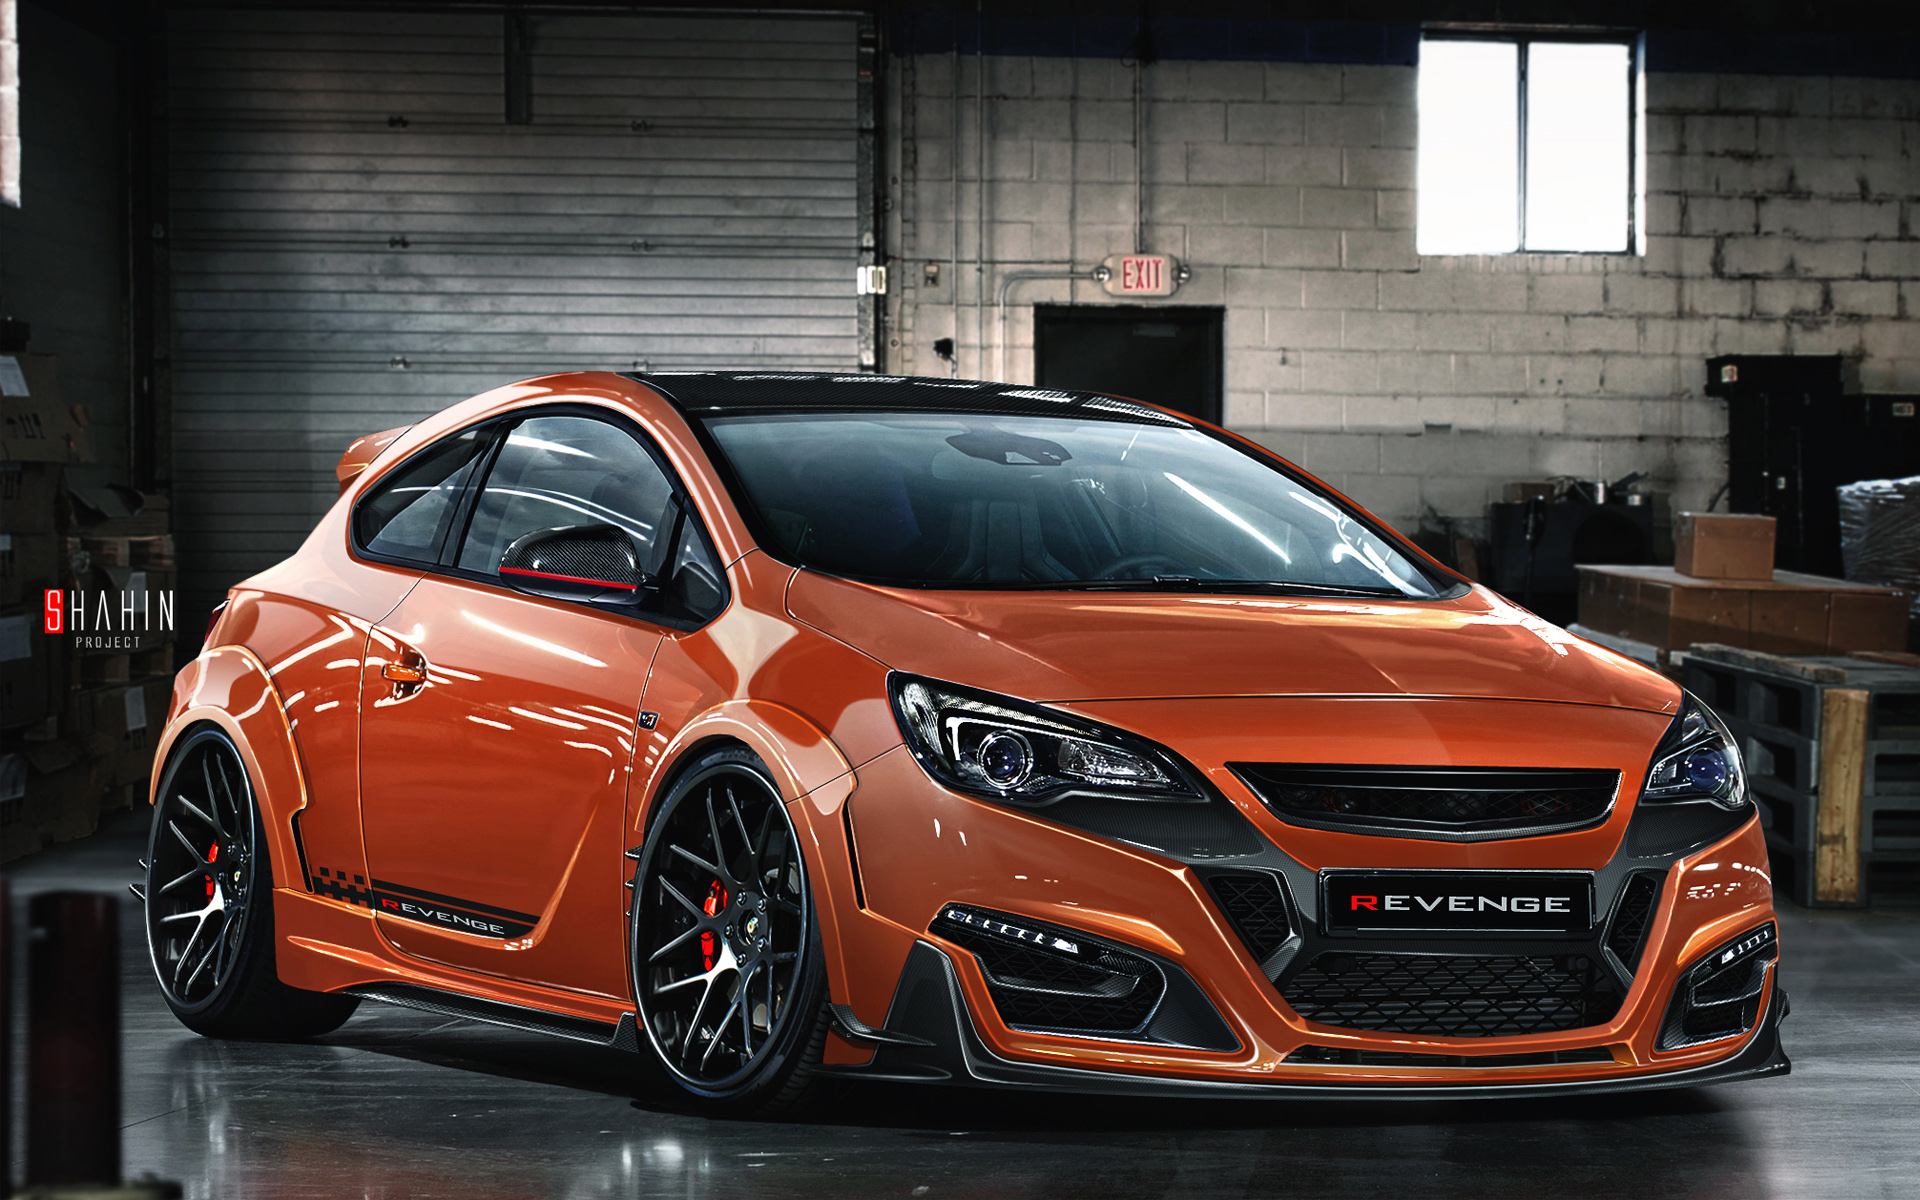 2015 opel astra gtc revenge wallpaper hd car wallpapers. Black Bedroom Furniture Sets. Home Design Ideas